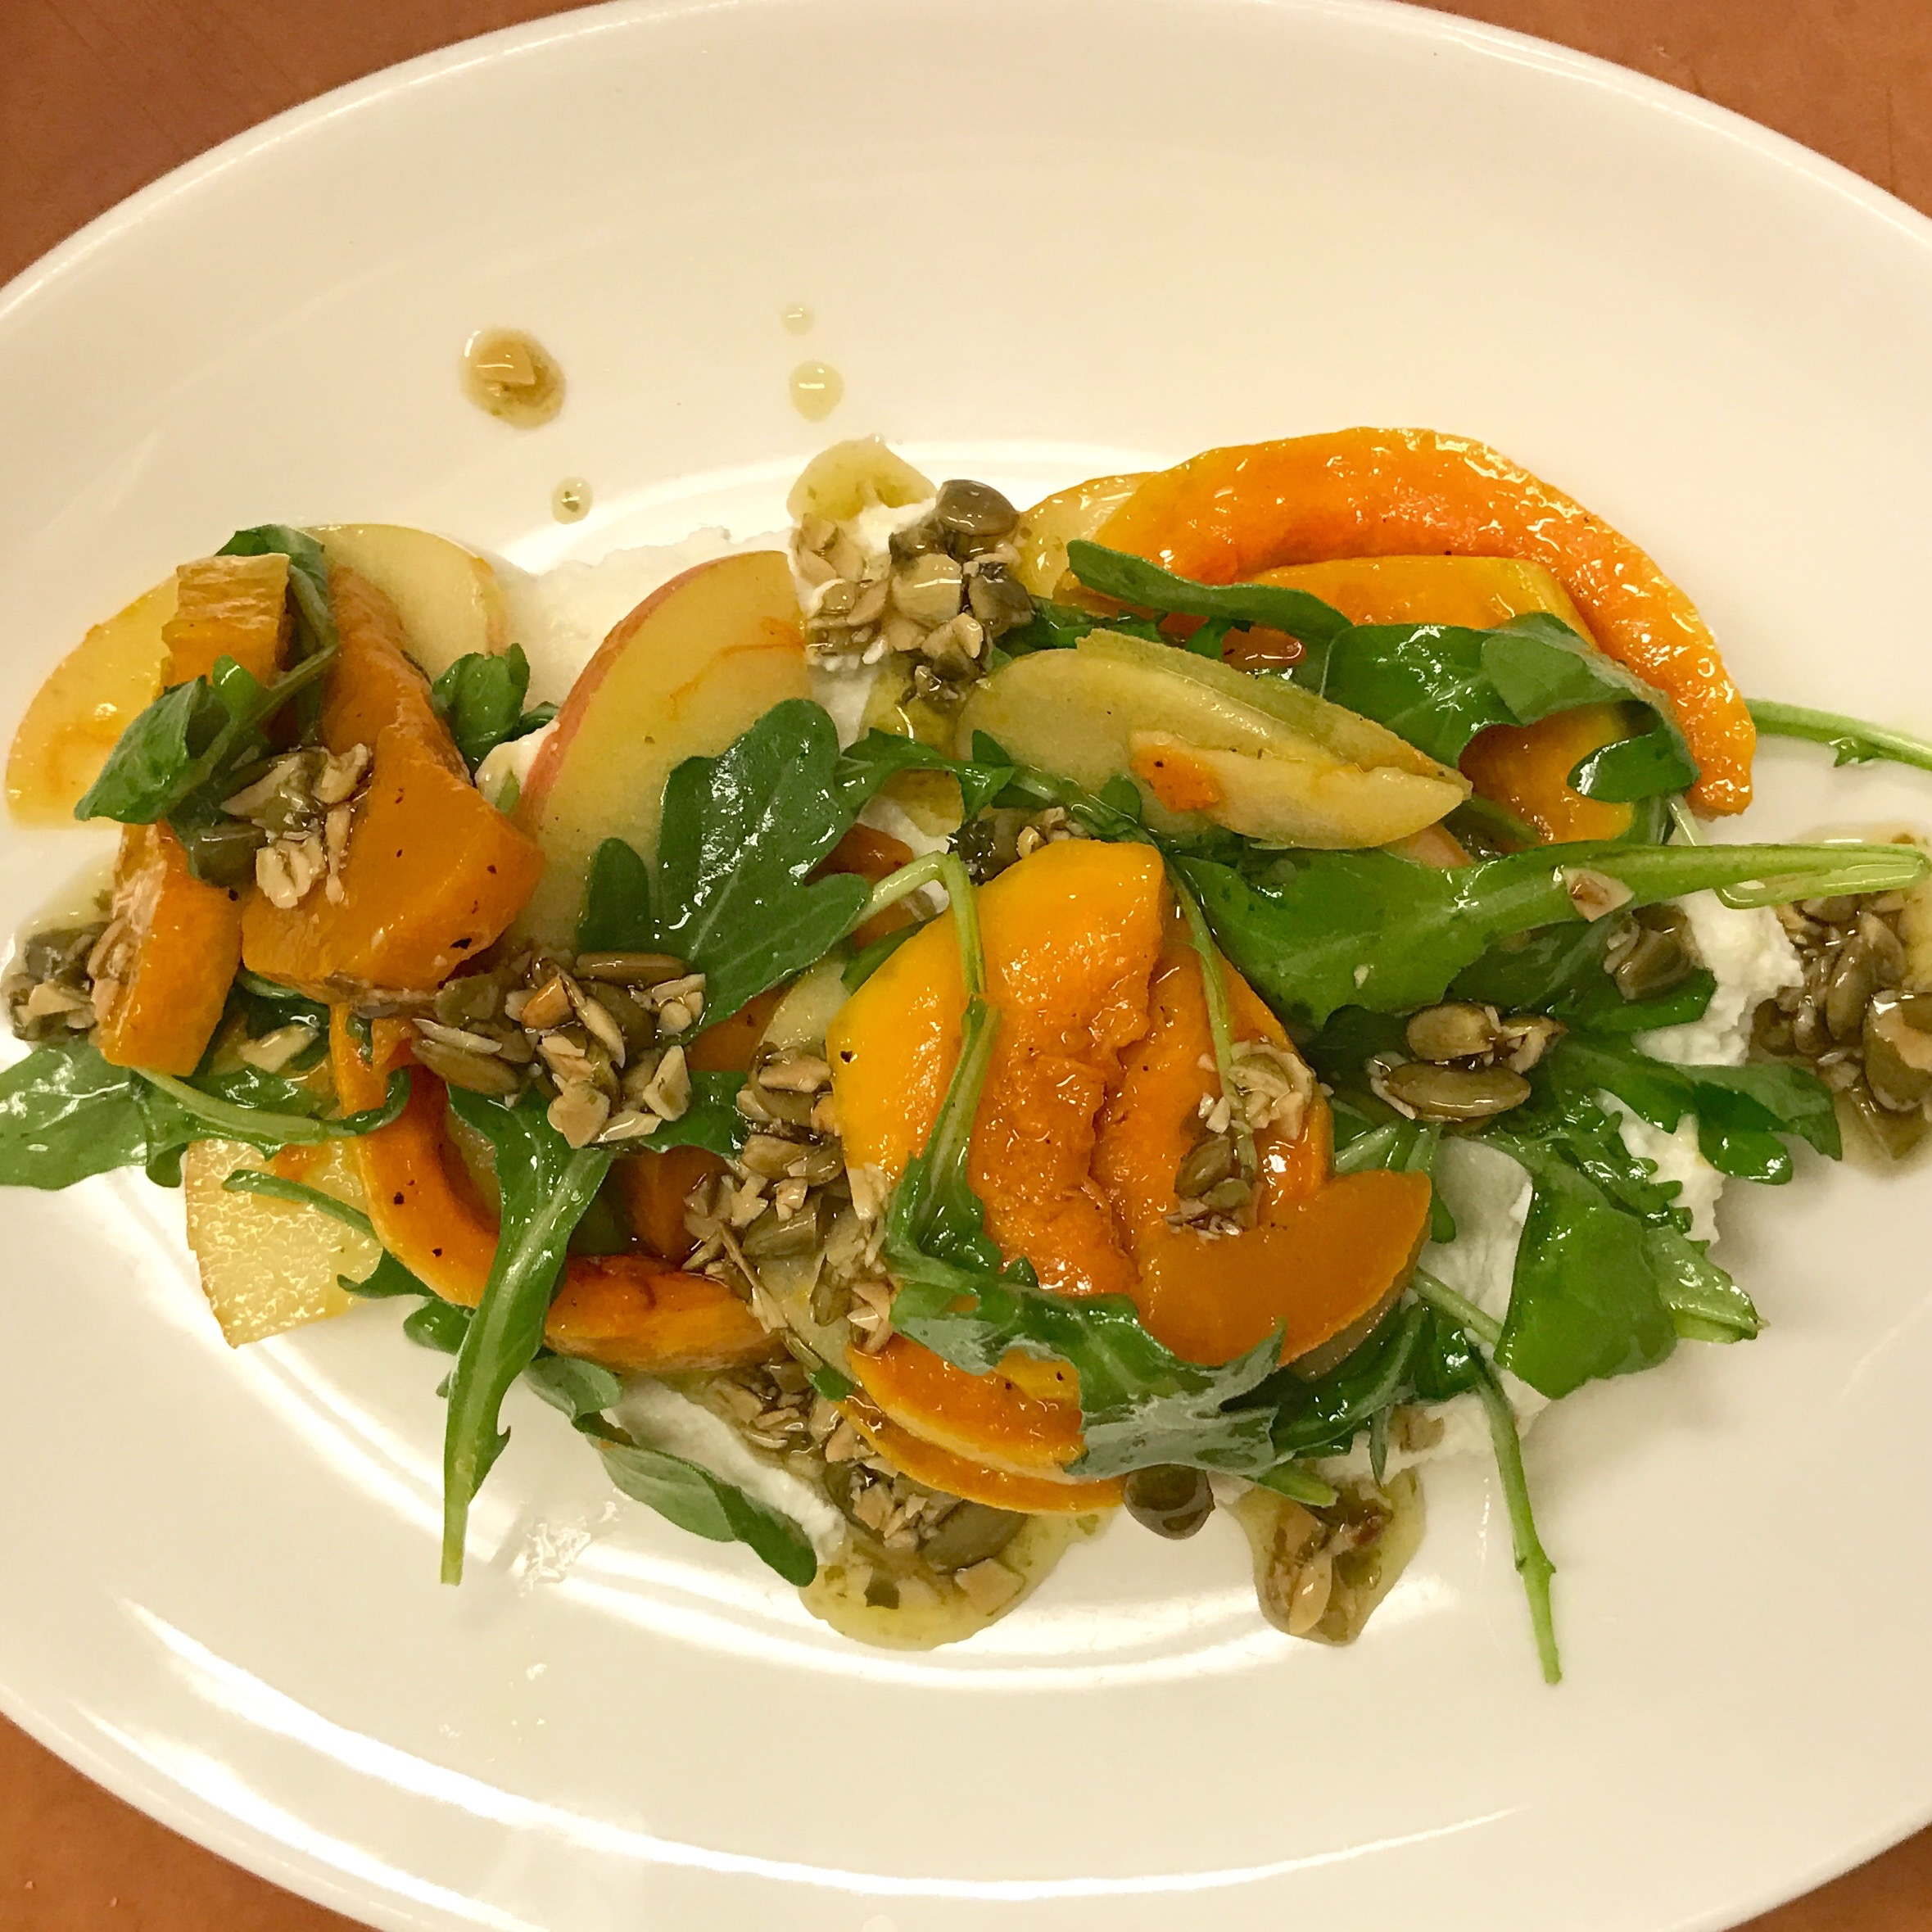 Organic Carnival Squash, Arugula, Ricotta, and Pumpkin Seed with Cider Vinaigrette